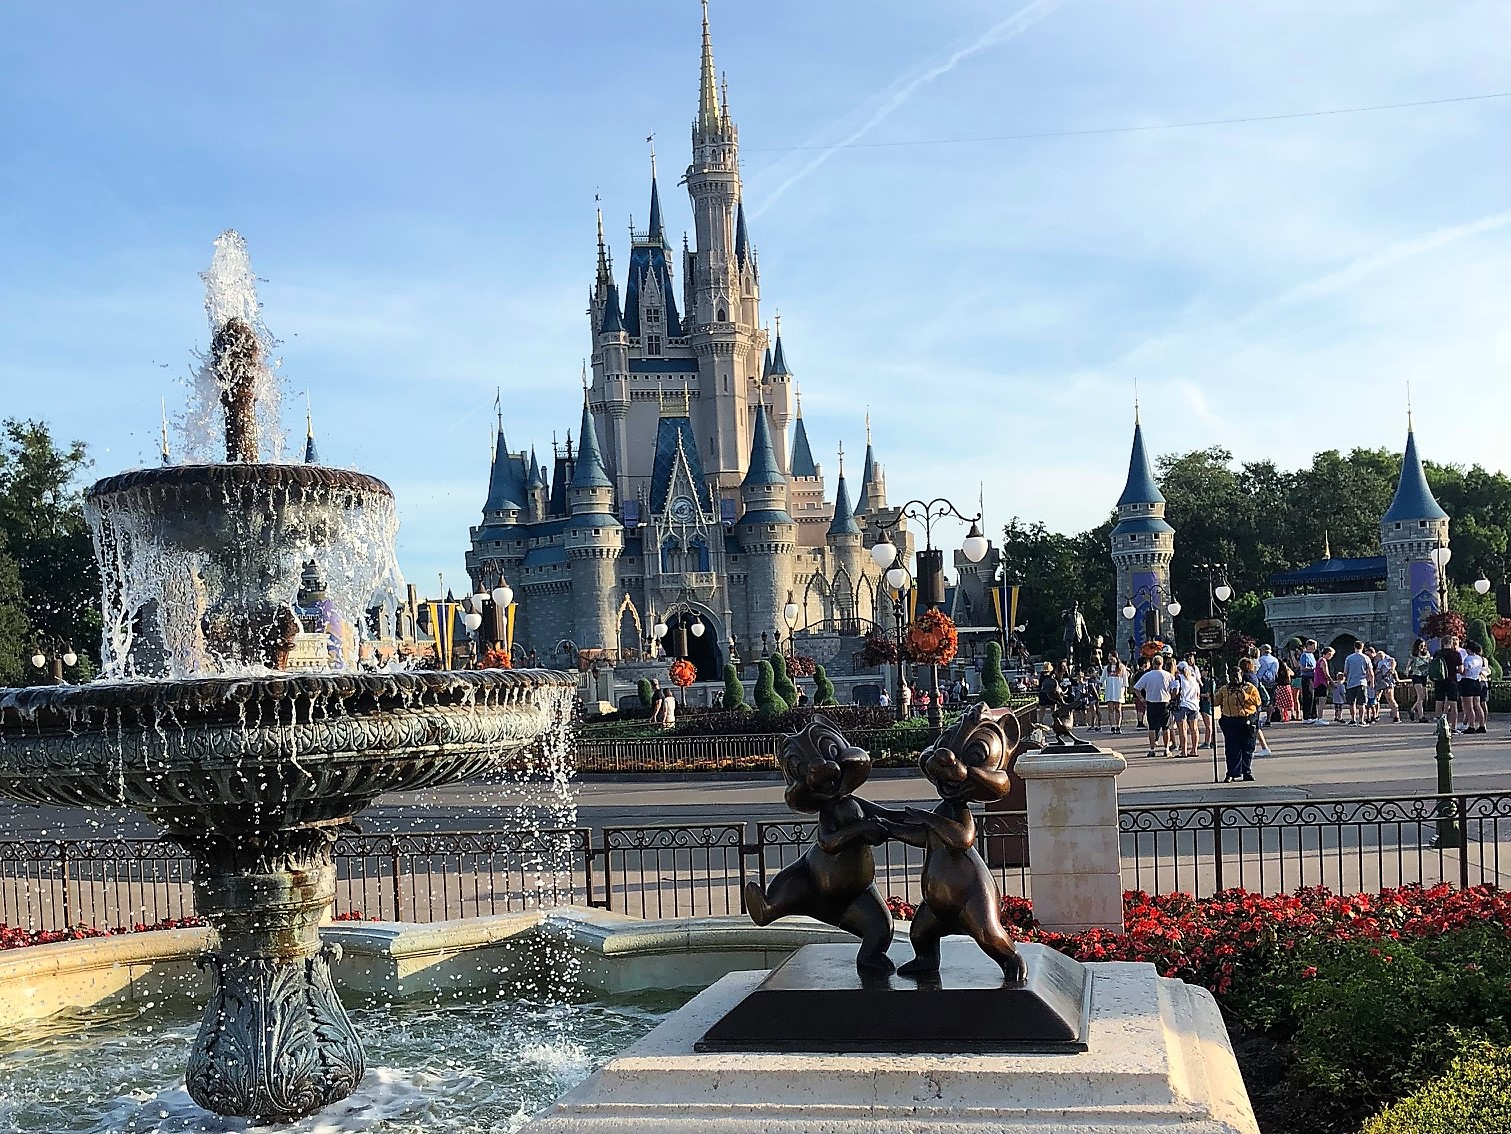 What are the current discounts available at Walt Disney World?